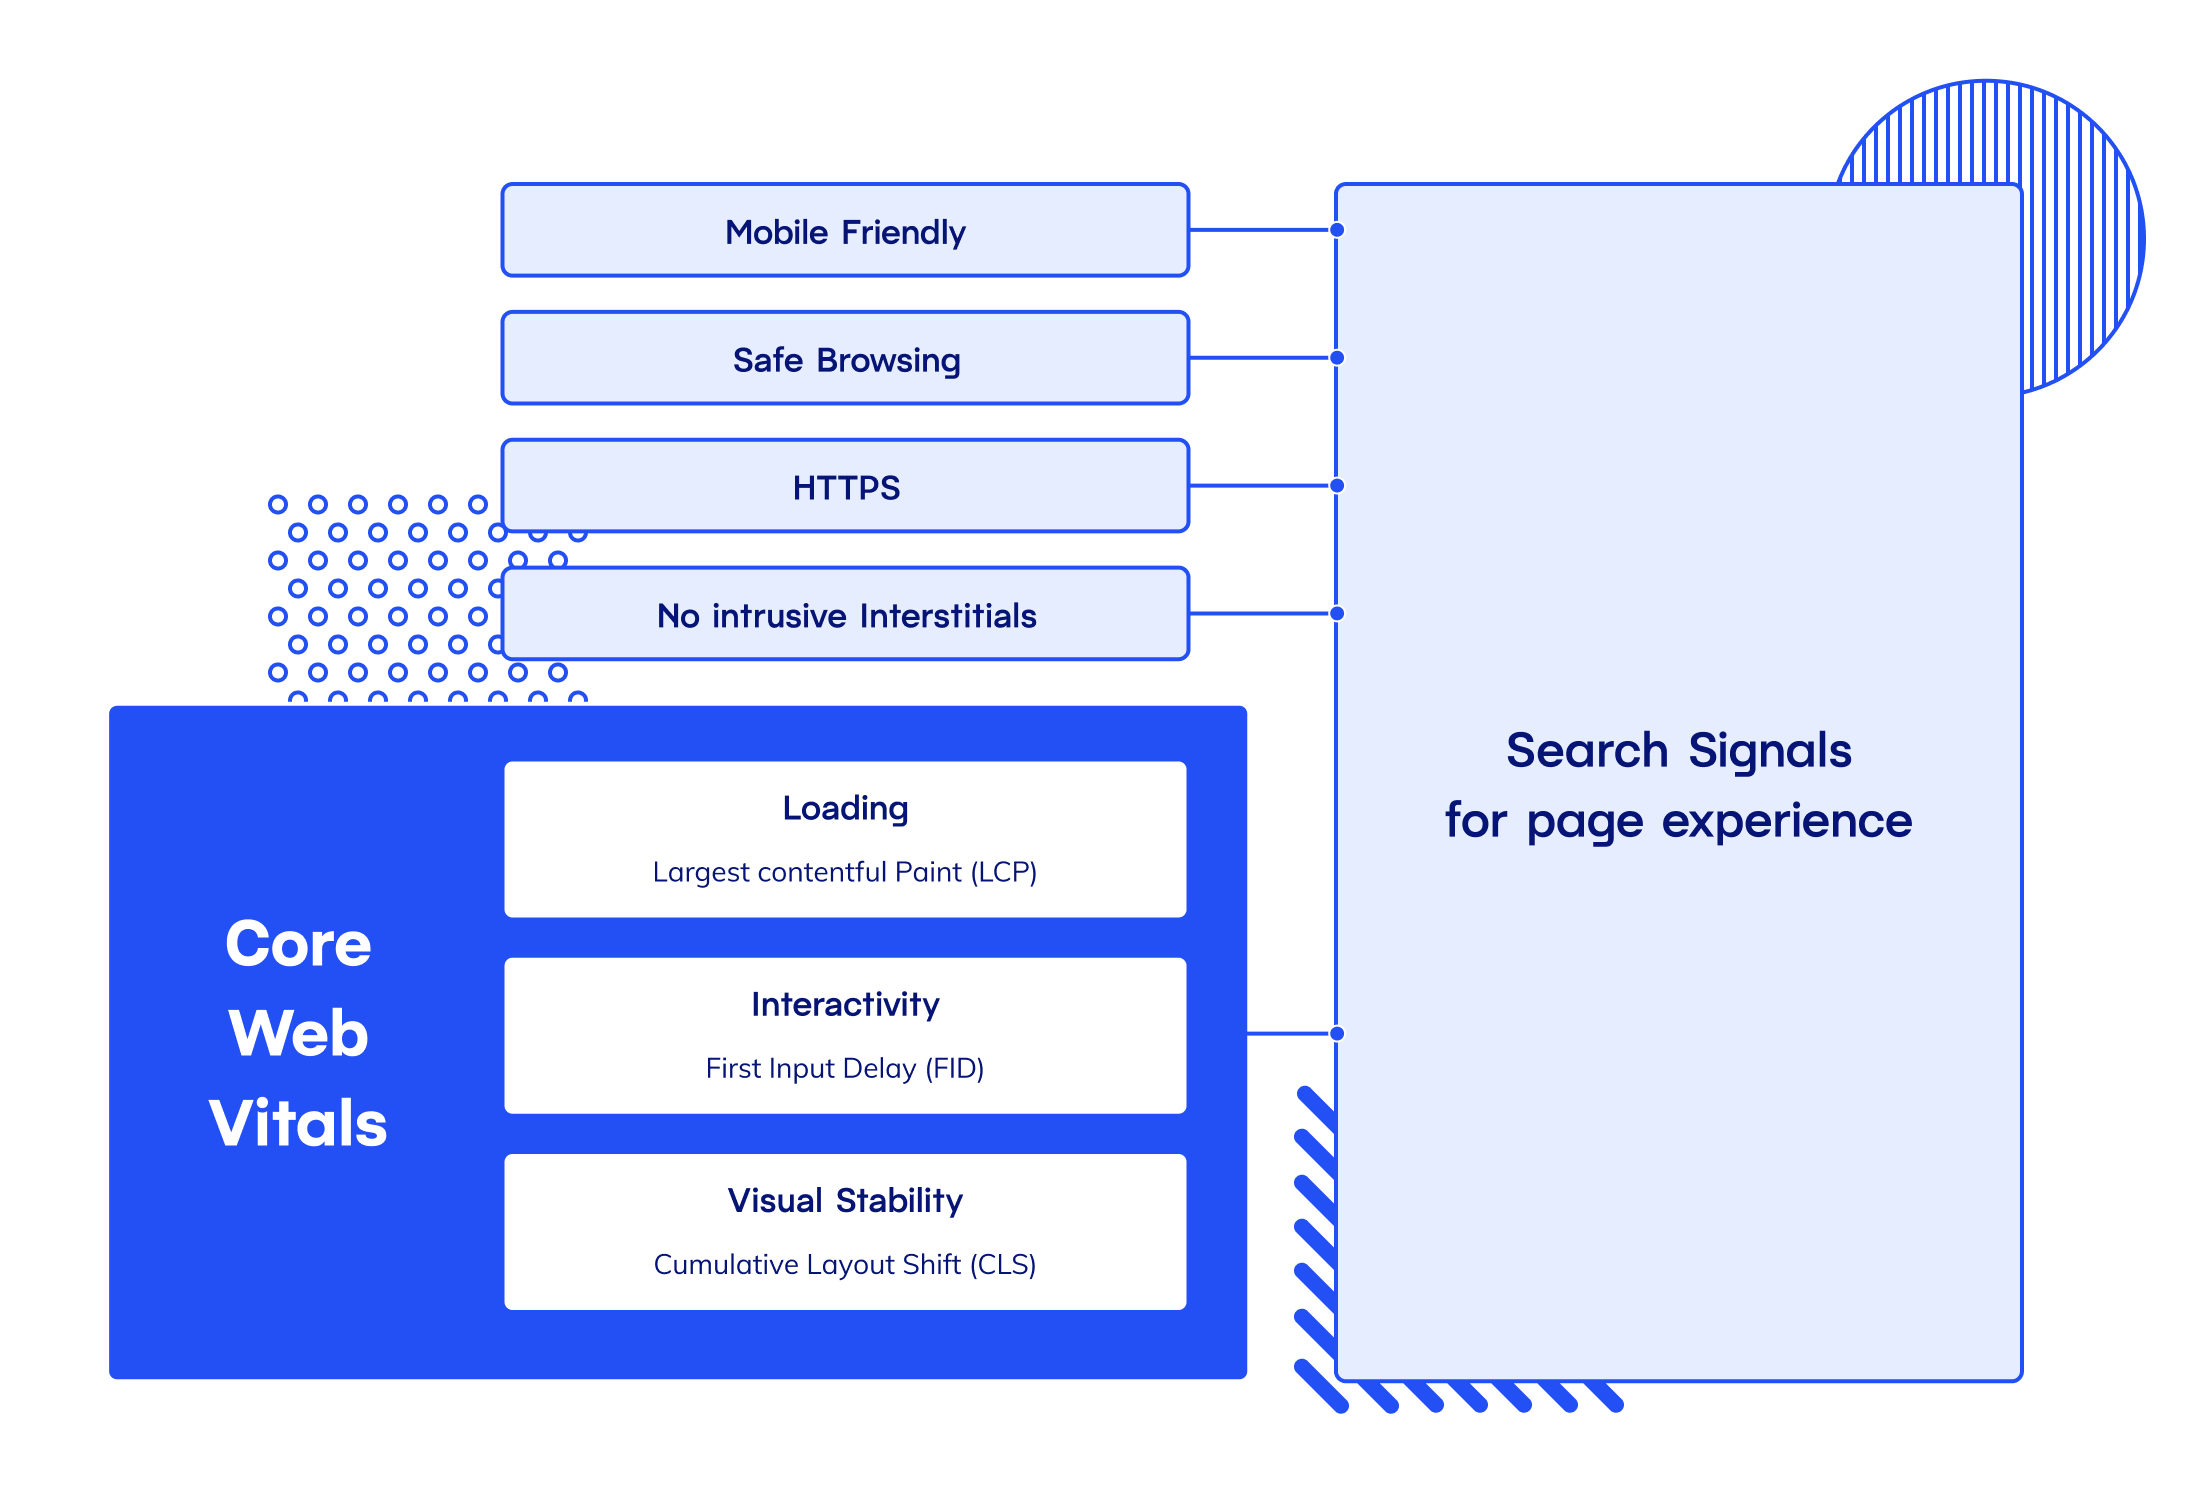 Page experience signals in CWV